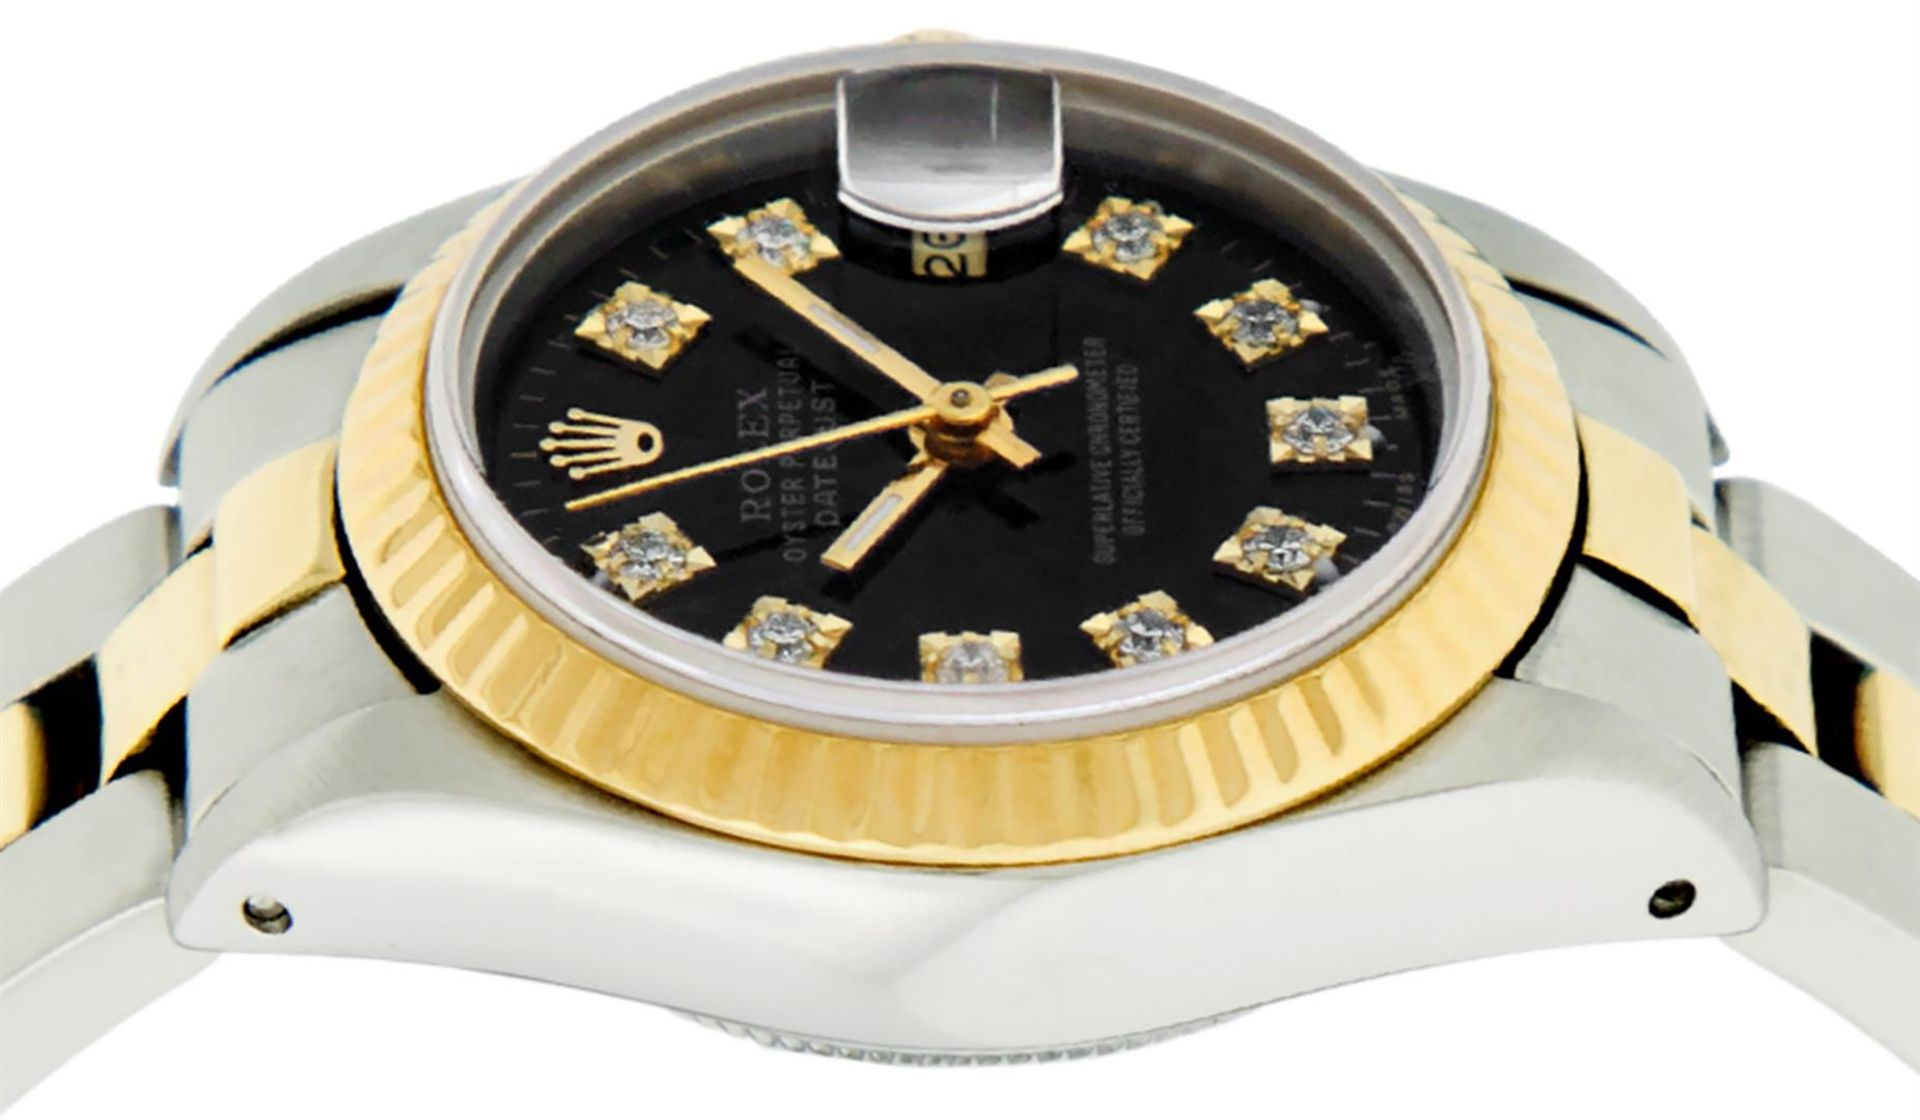 Rolex Ladies 26 Black Diamond Oyster Perpetual Datejust Polished Serviced - Image 8 of 9